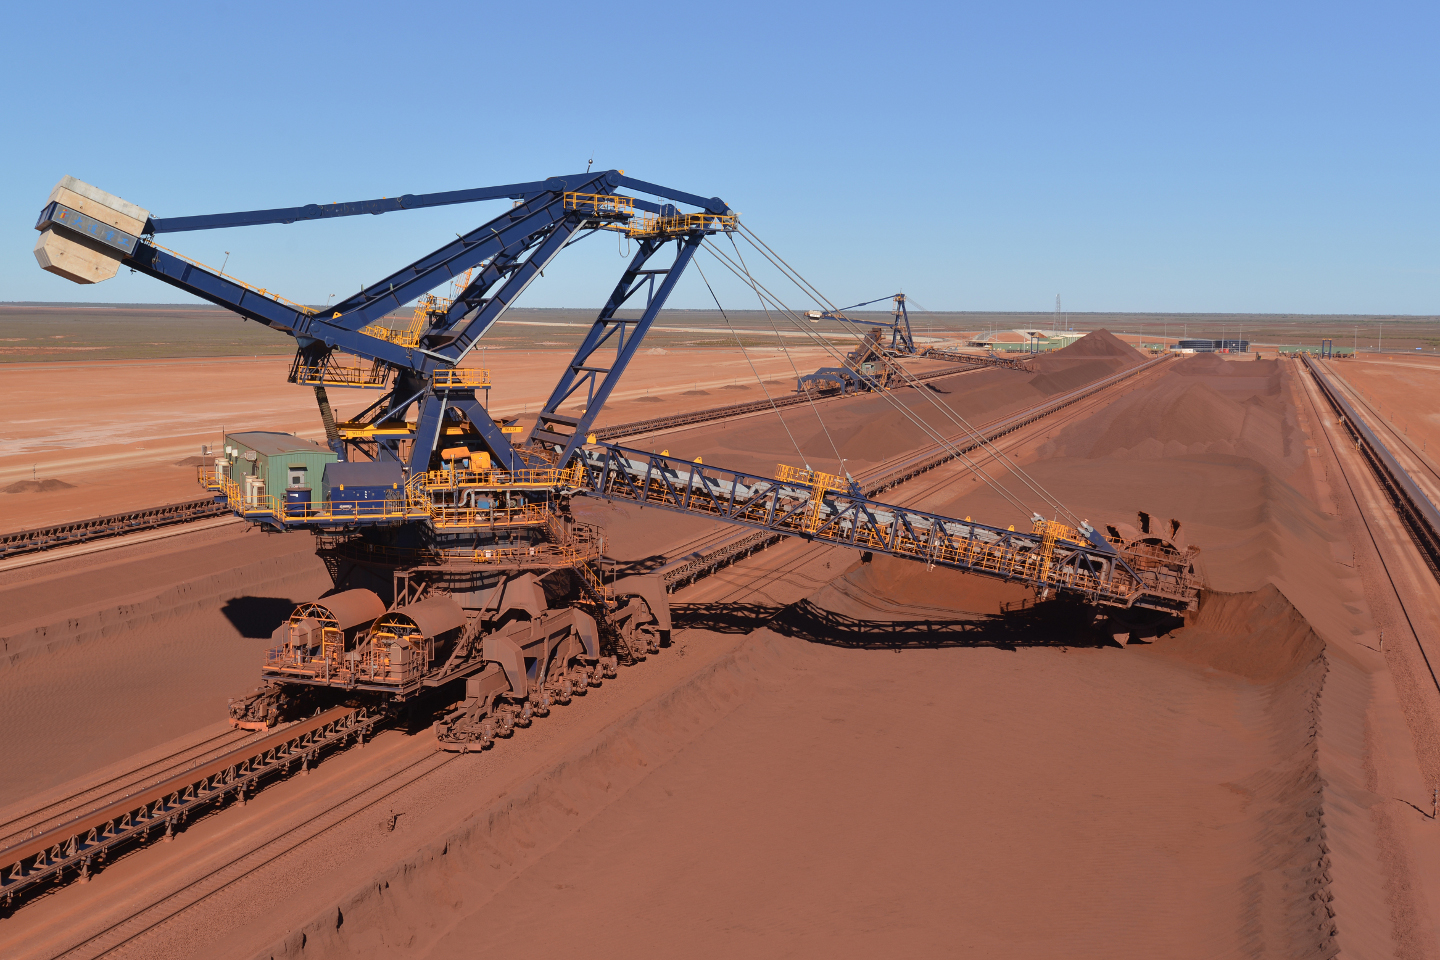 BHP approves spending of United States dollars 2.9 mn to develop iron ore project